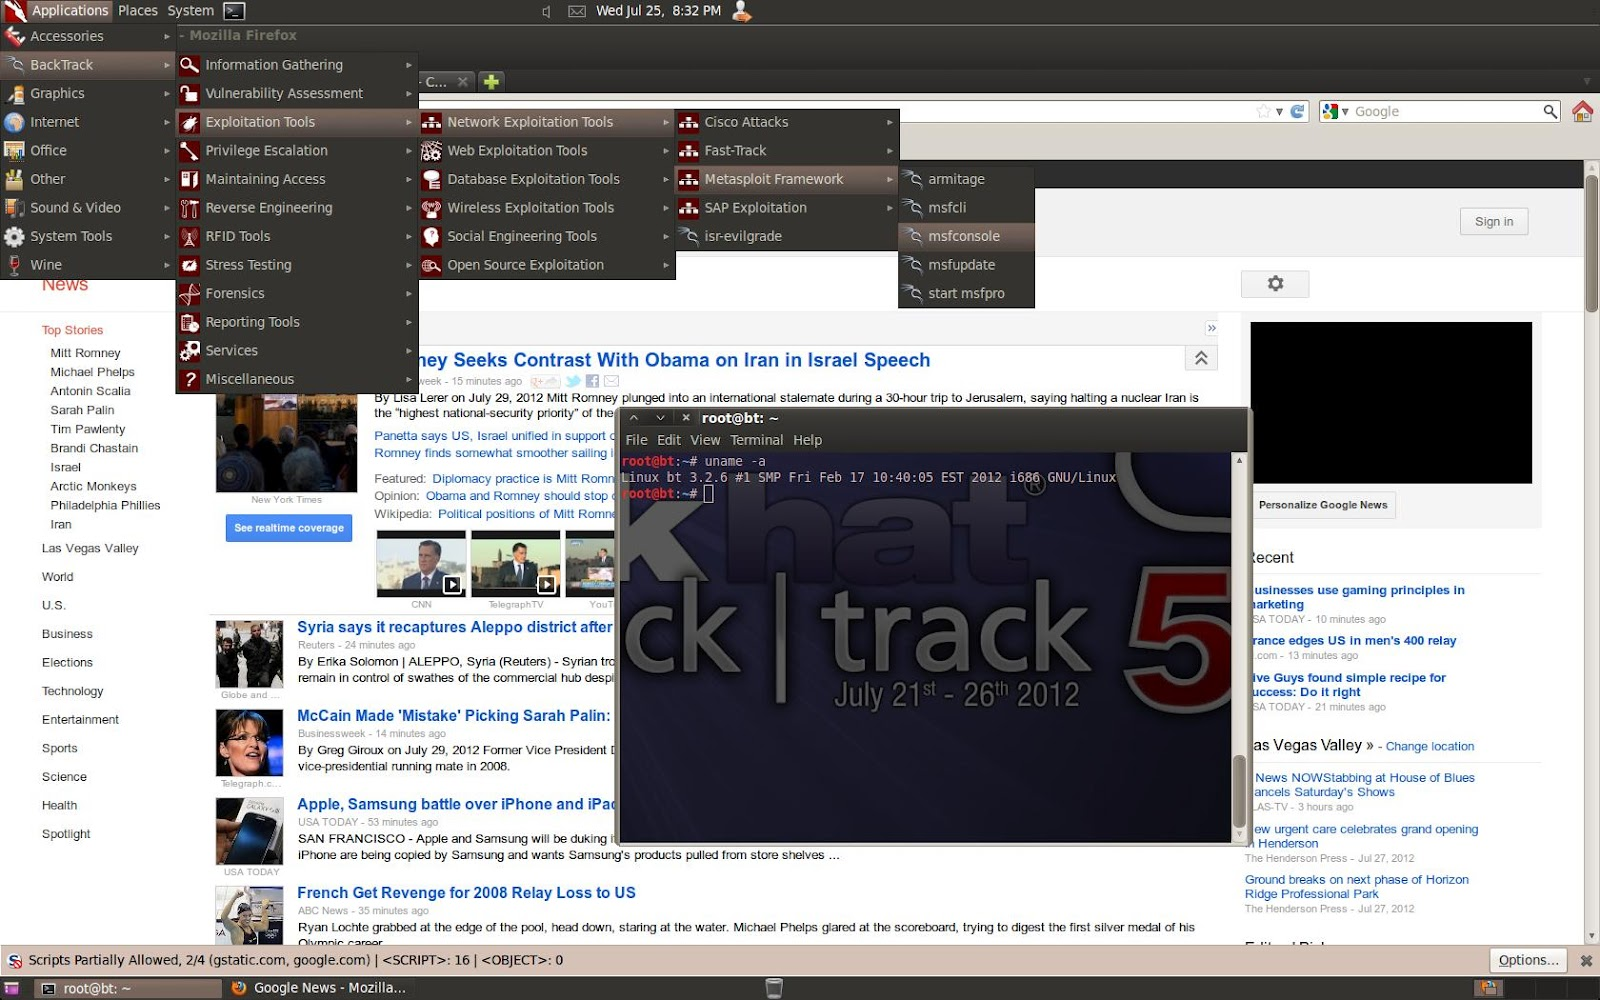 How to install backtrack 5 r3 on windows 7/8 using vmware.